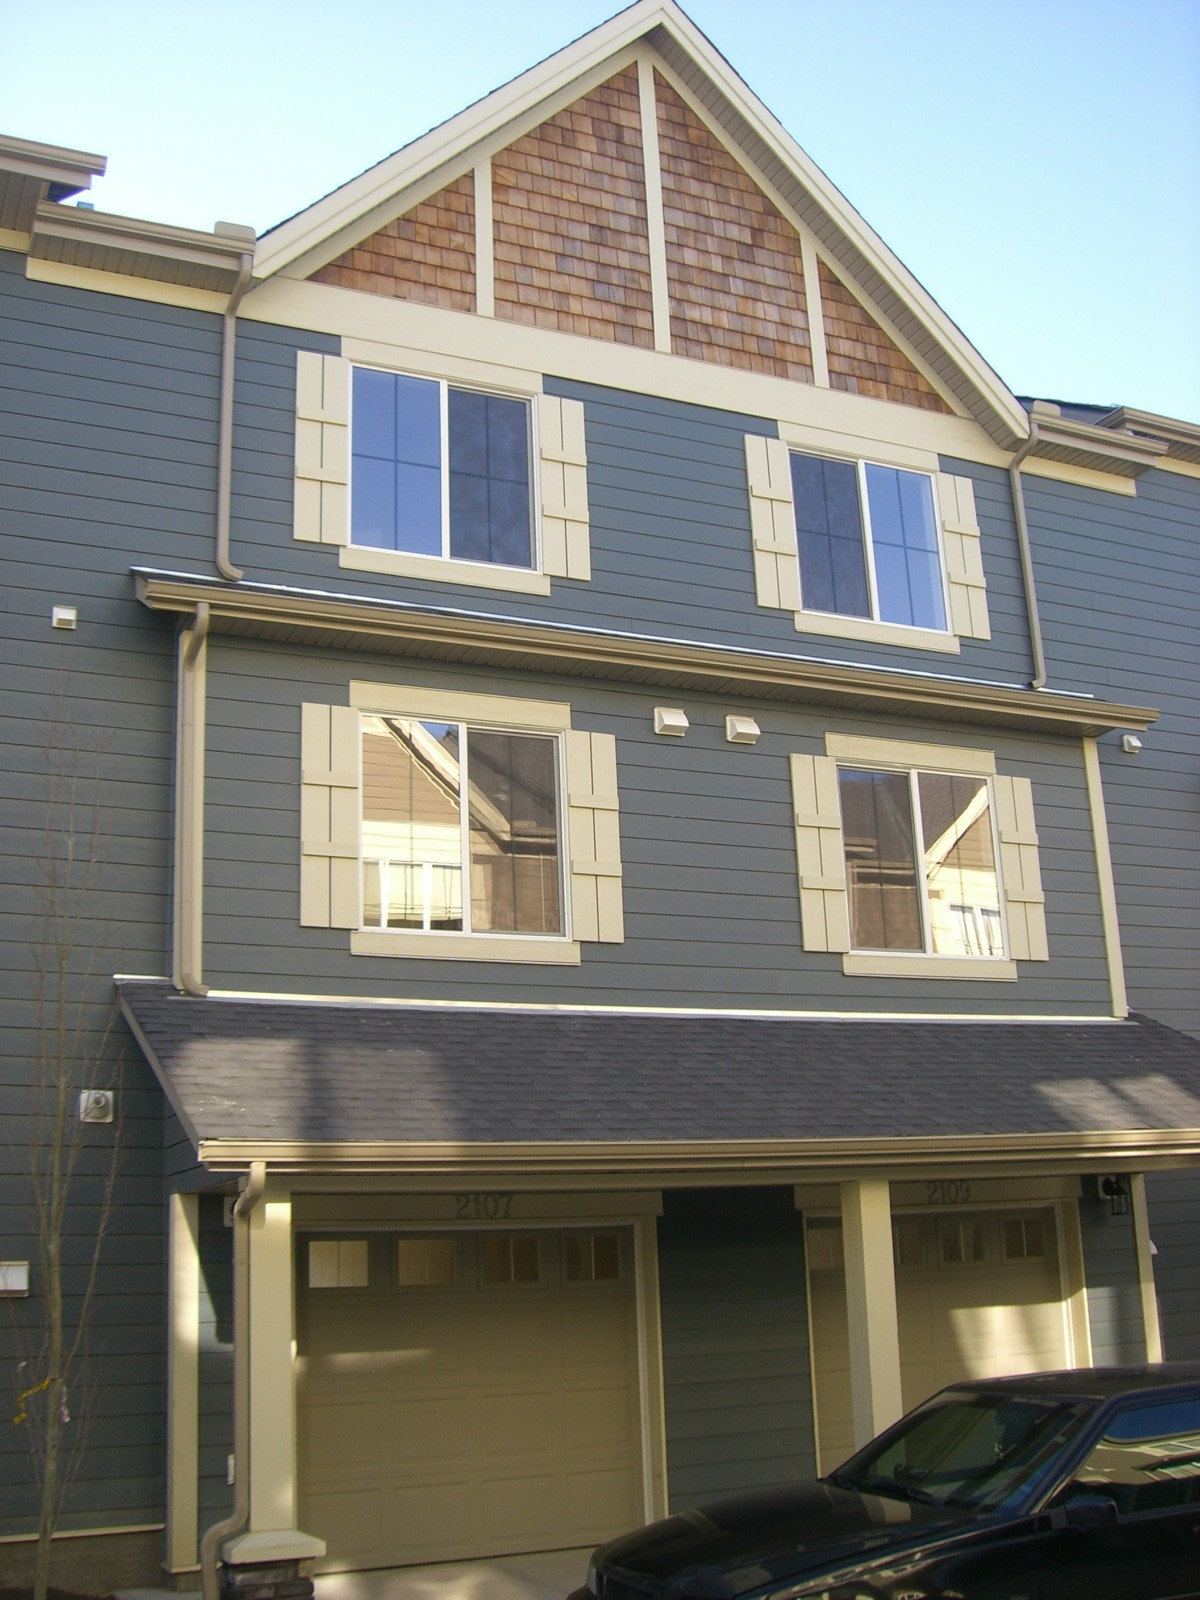 Welcome to this beautiful 2 bedroom db garage town home in Panorama!